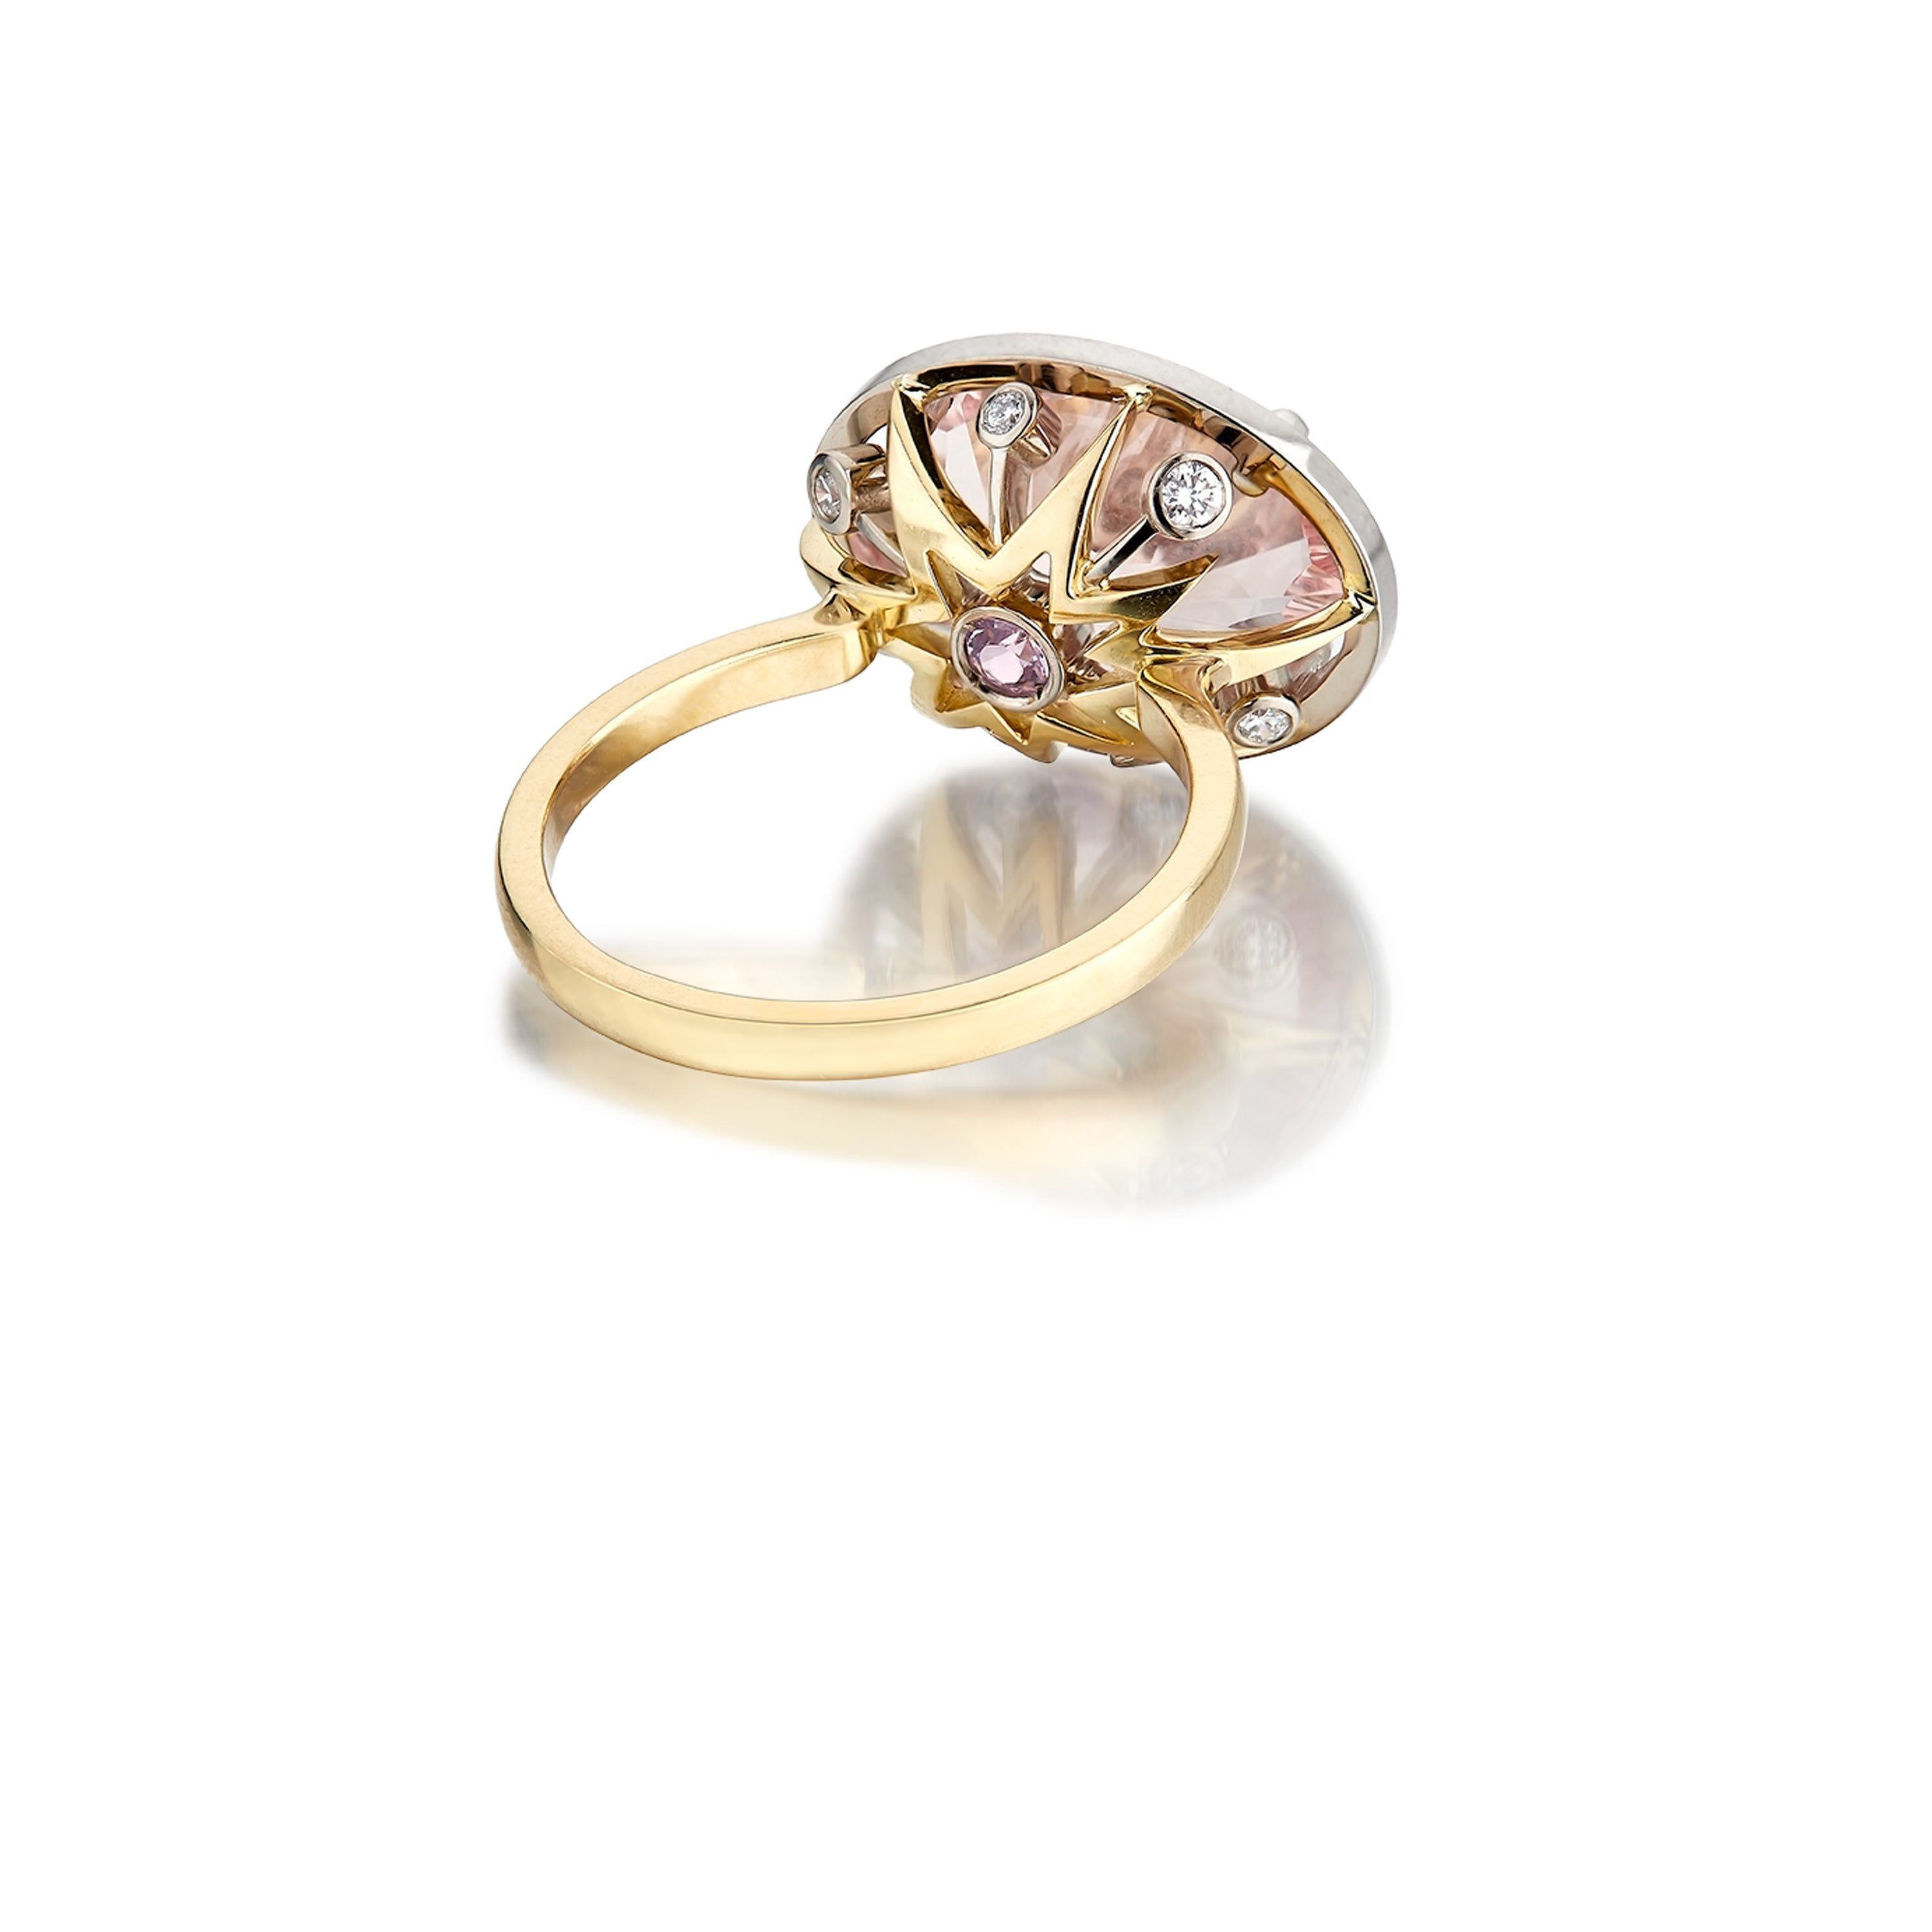 Kamuru Ring Morganite, Sapphire, Diamond and 18K Gold ring